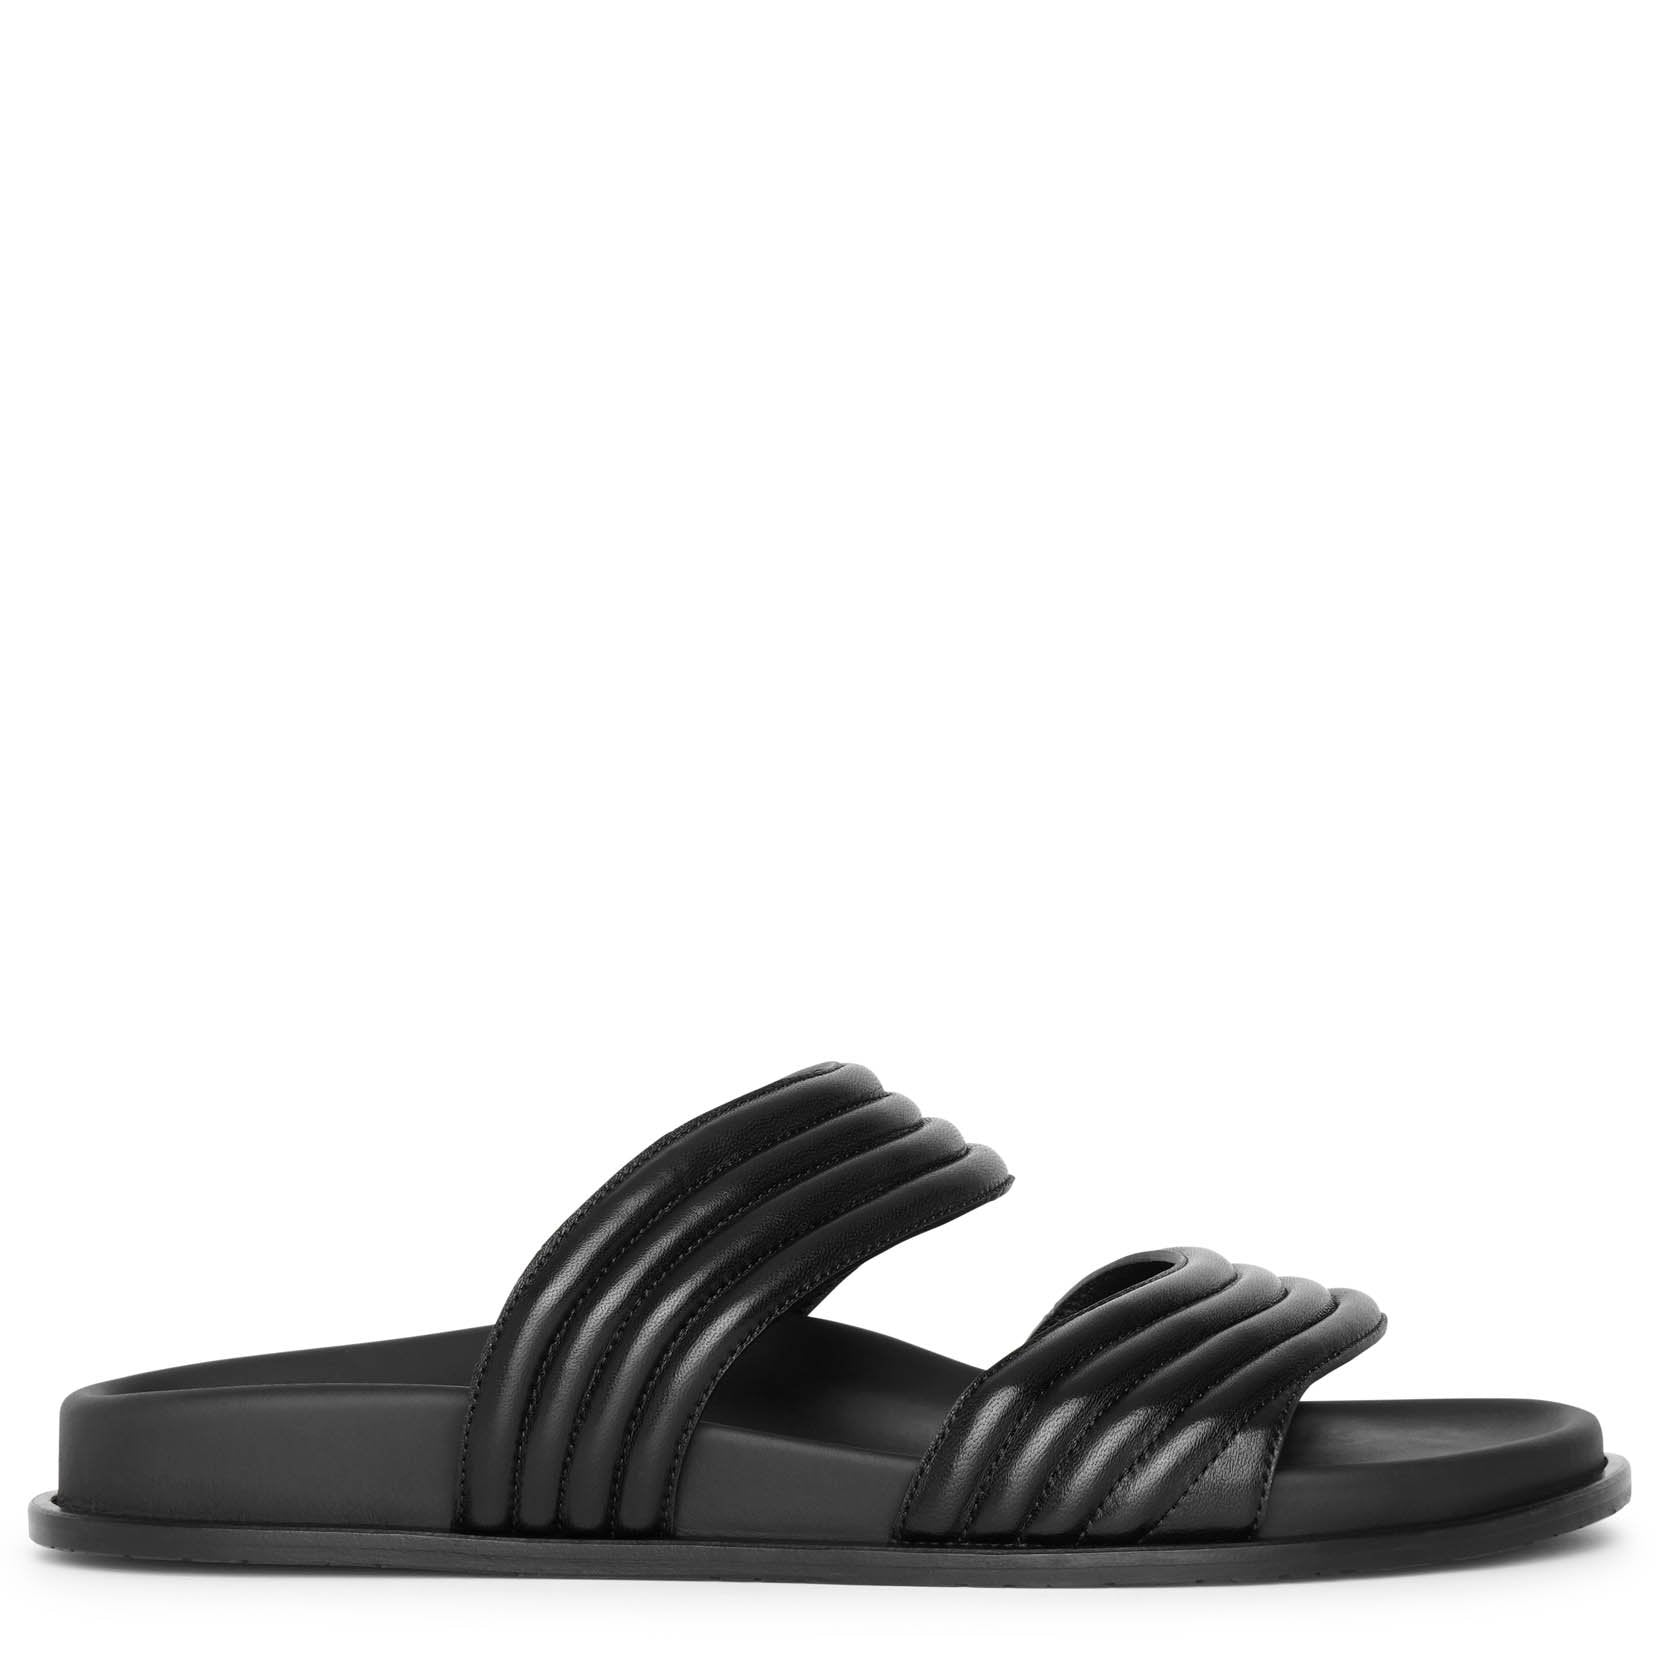 Alaïa Black leather flat sandals